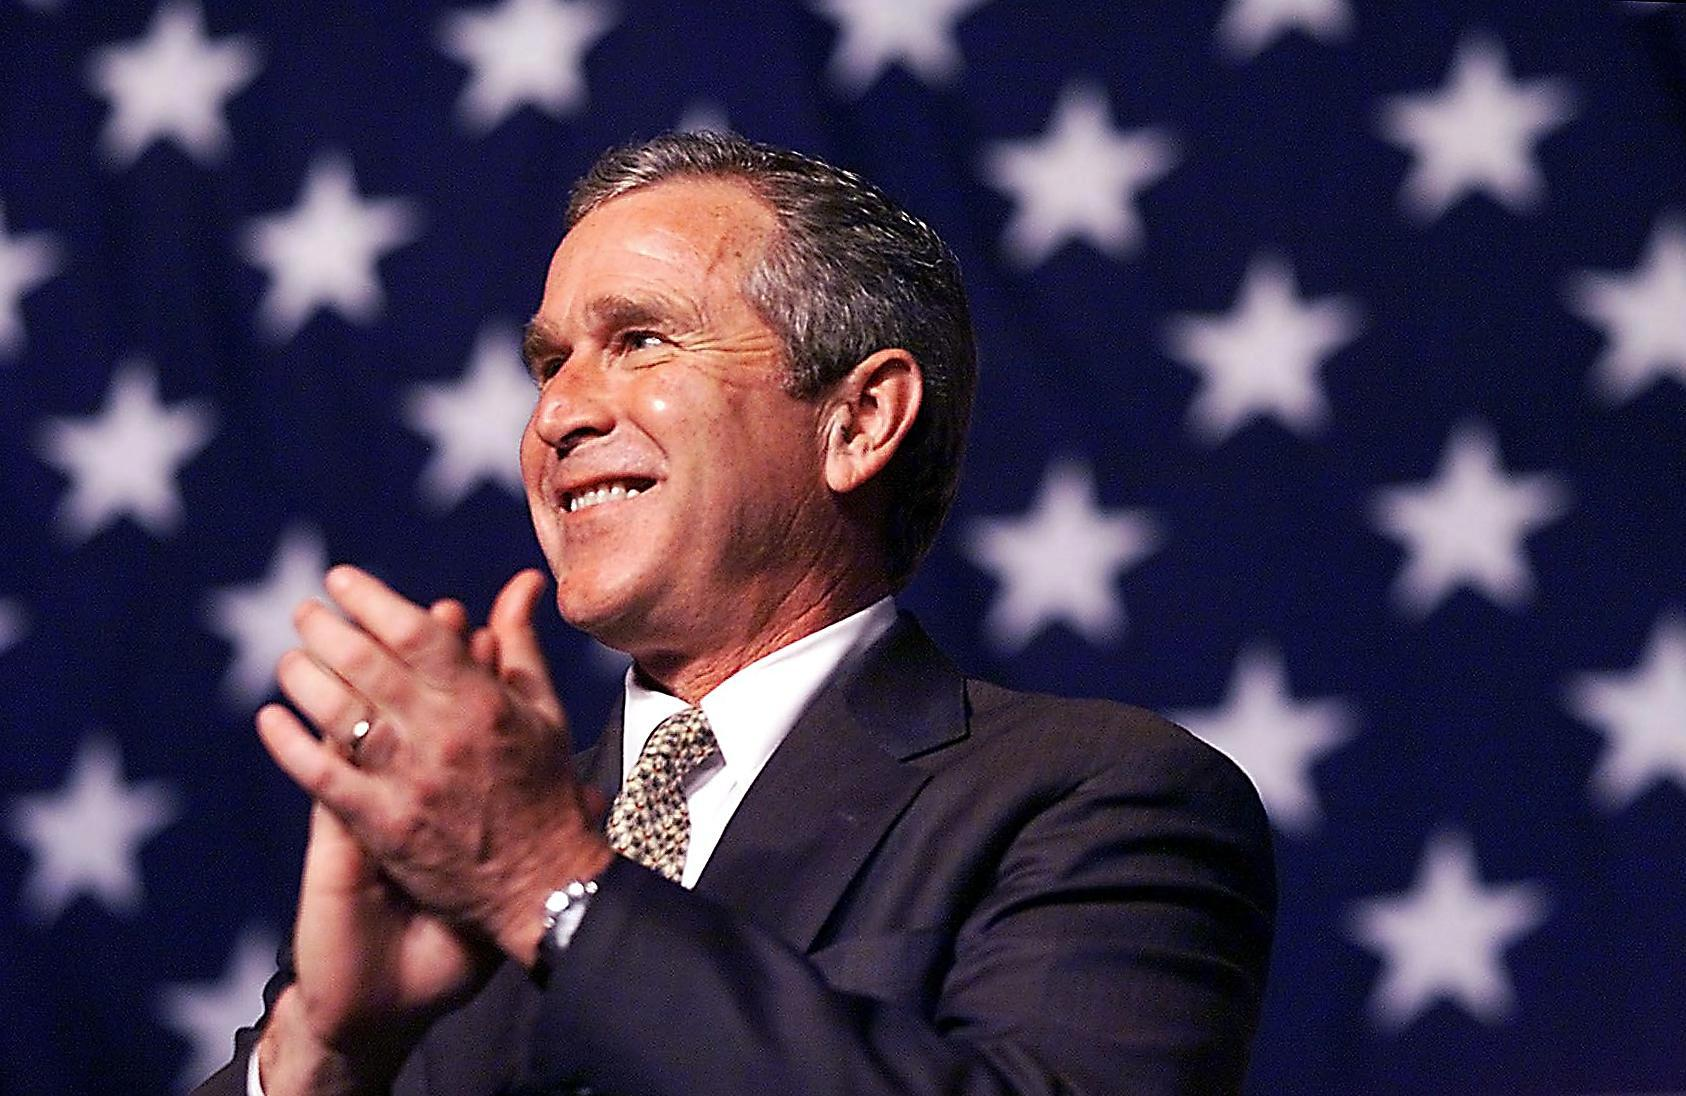 Republican presidential candidate George W. Bush